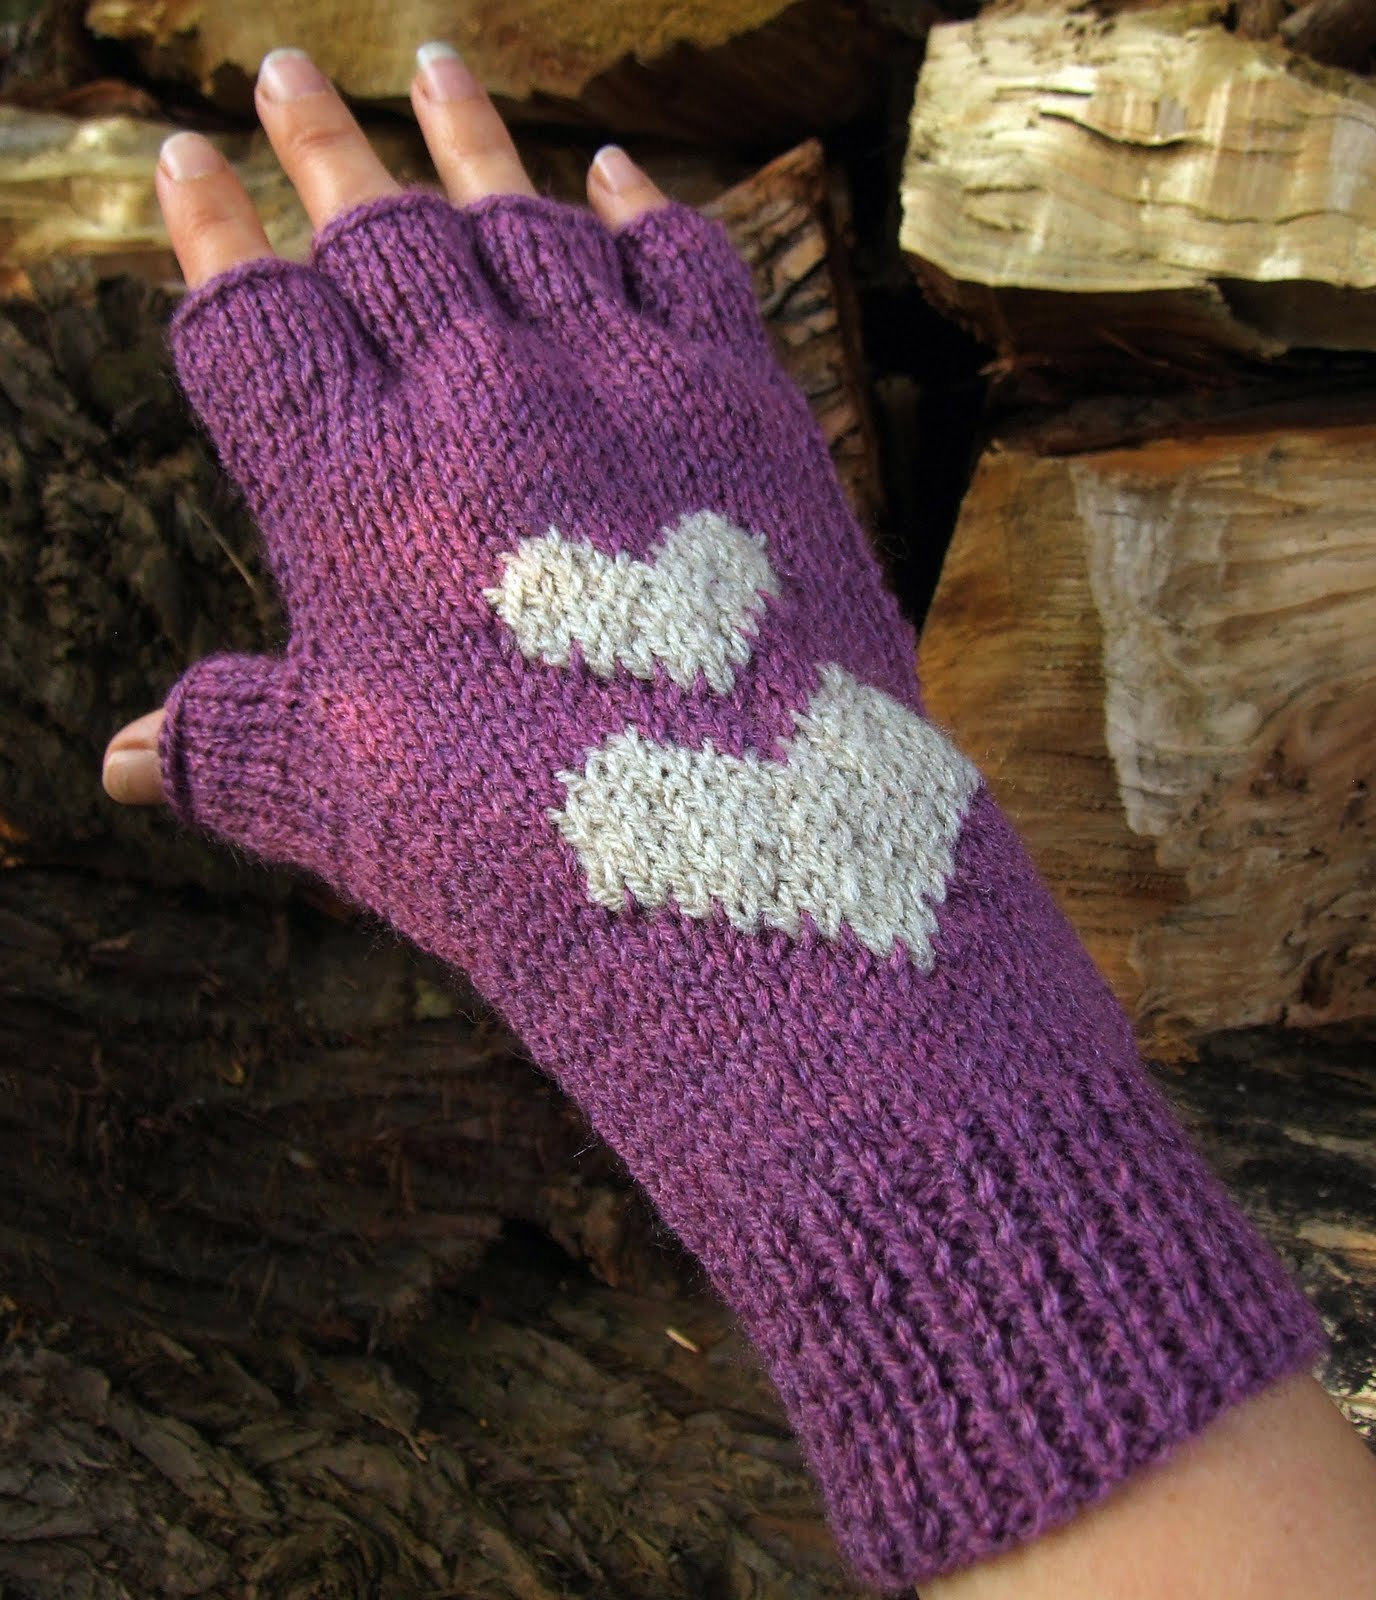 Fingerless Gloves Knitting Pattern | A Knitting Blog